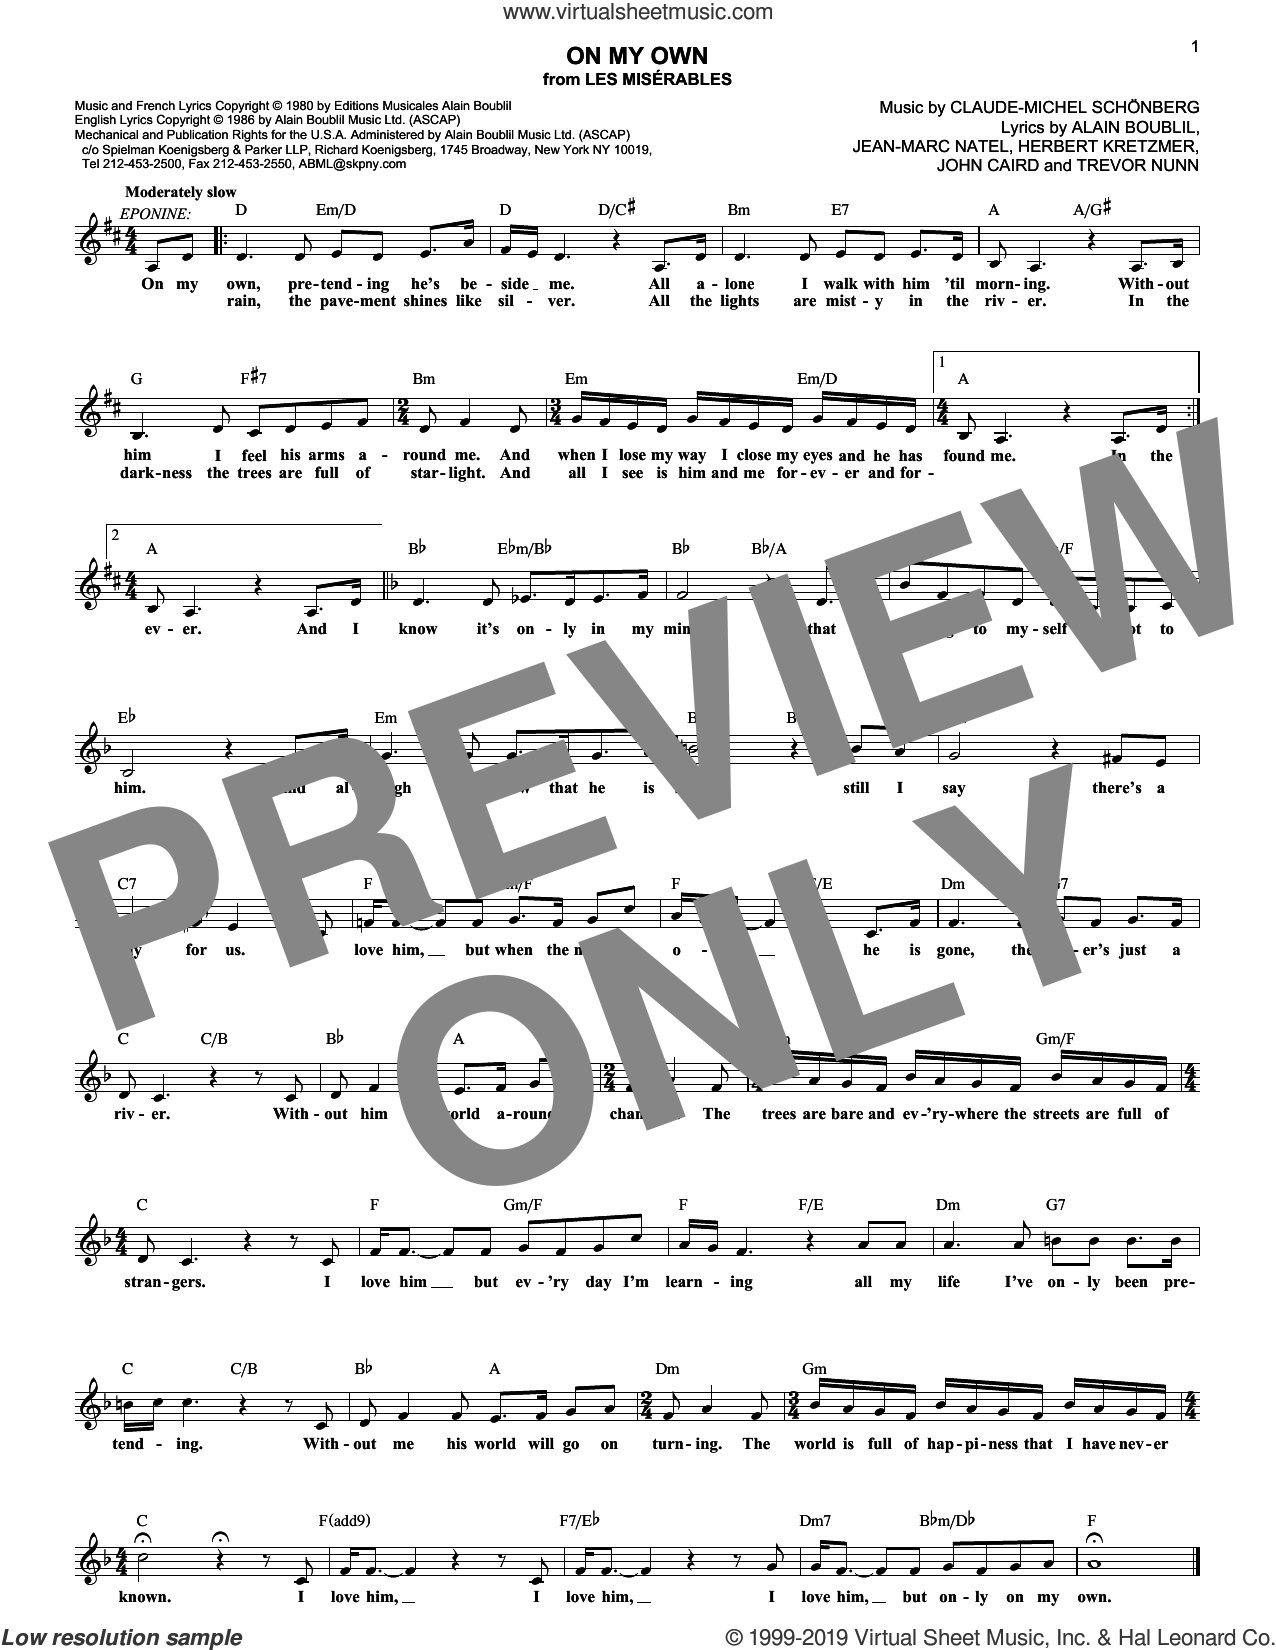 On My Own (from Les Miserables) sheet music for voice and other instruments (fake book) by Boublil and Schonberg, Alain Boublil, Claude-Michel Schonberg, Herbert Kretzmer, Jean-Marc Natel, John Caird and Trevor Nunn, intermediate skill level